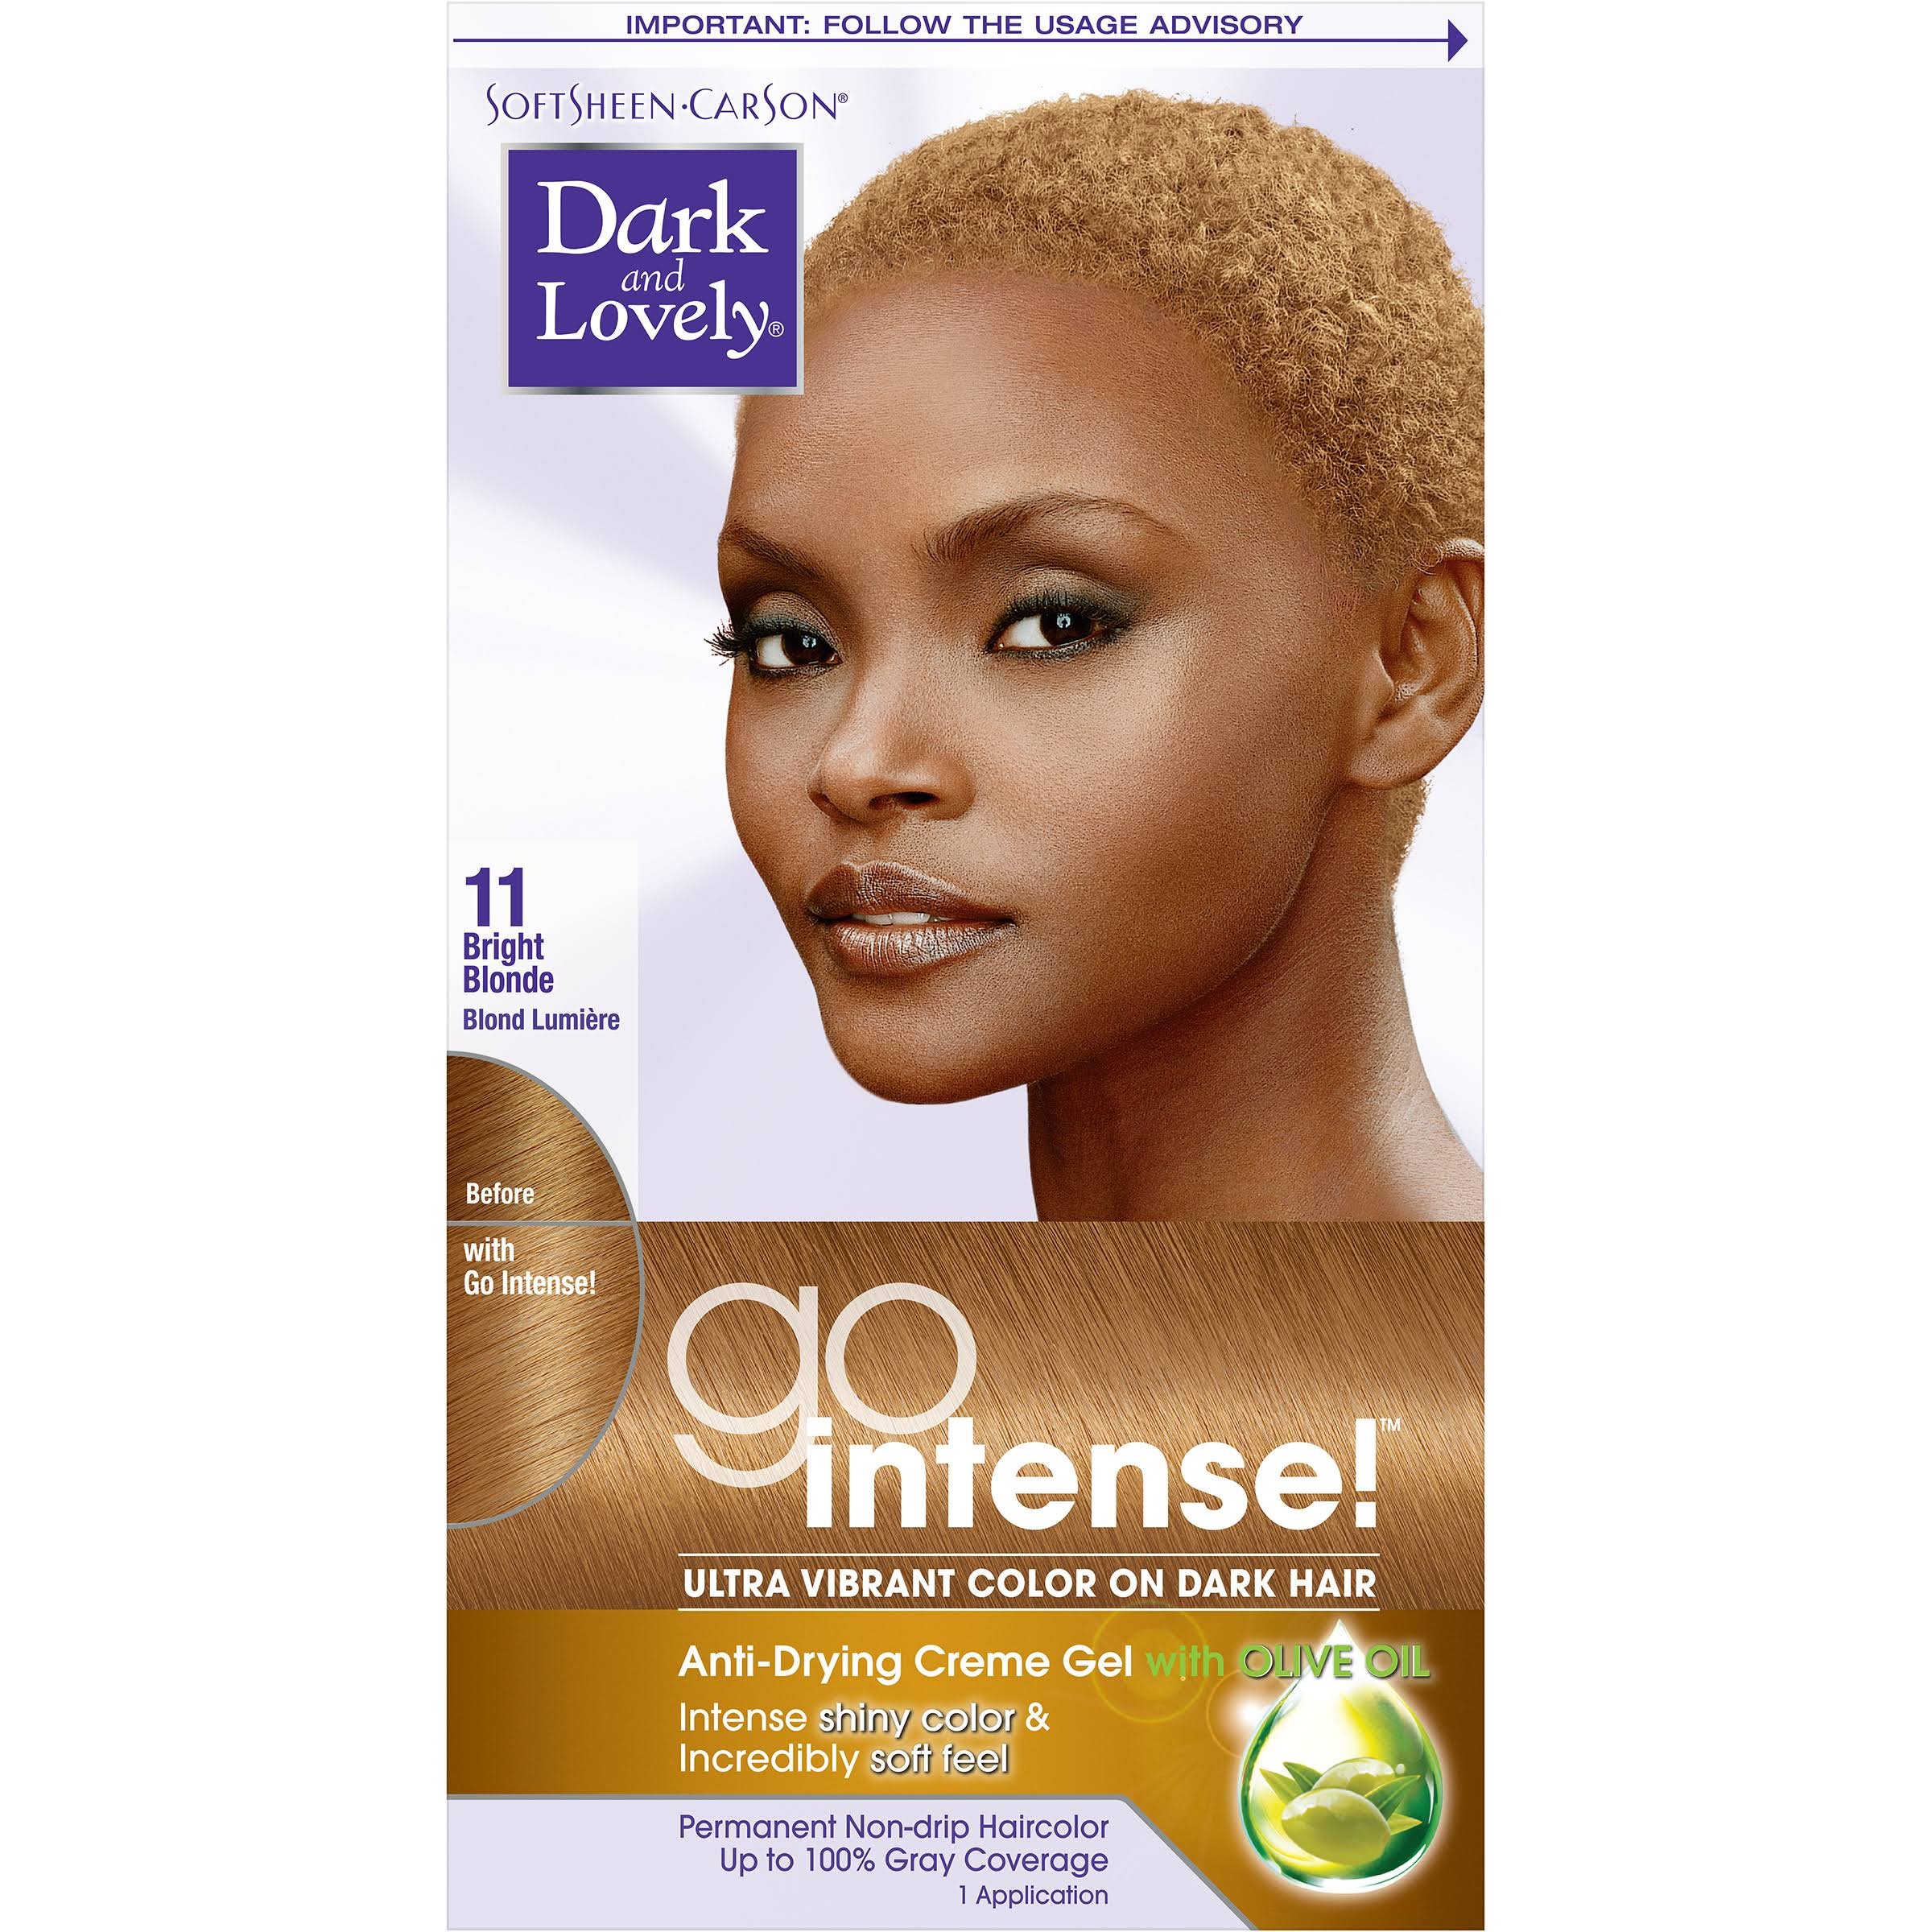 Dark & Lovely Soft Sheen Carson Hair Color Go Intense - 11 Bright Blonde